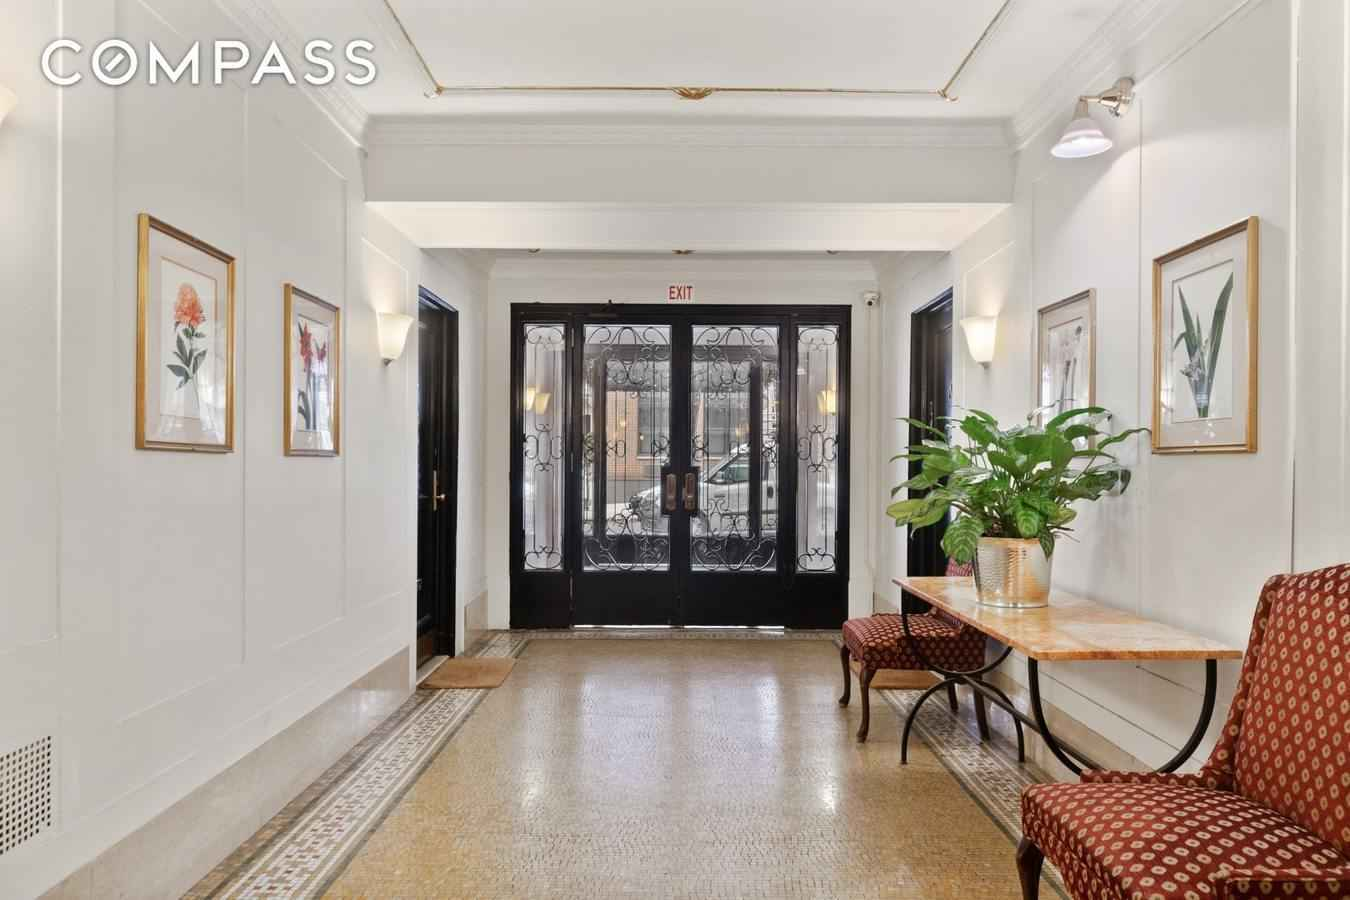 Apartment for sale at 252 West 85th Street, Apt 9-A